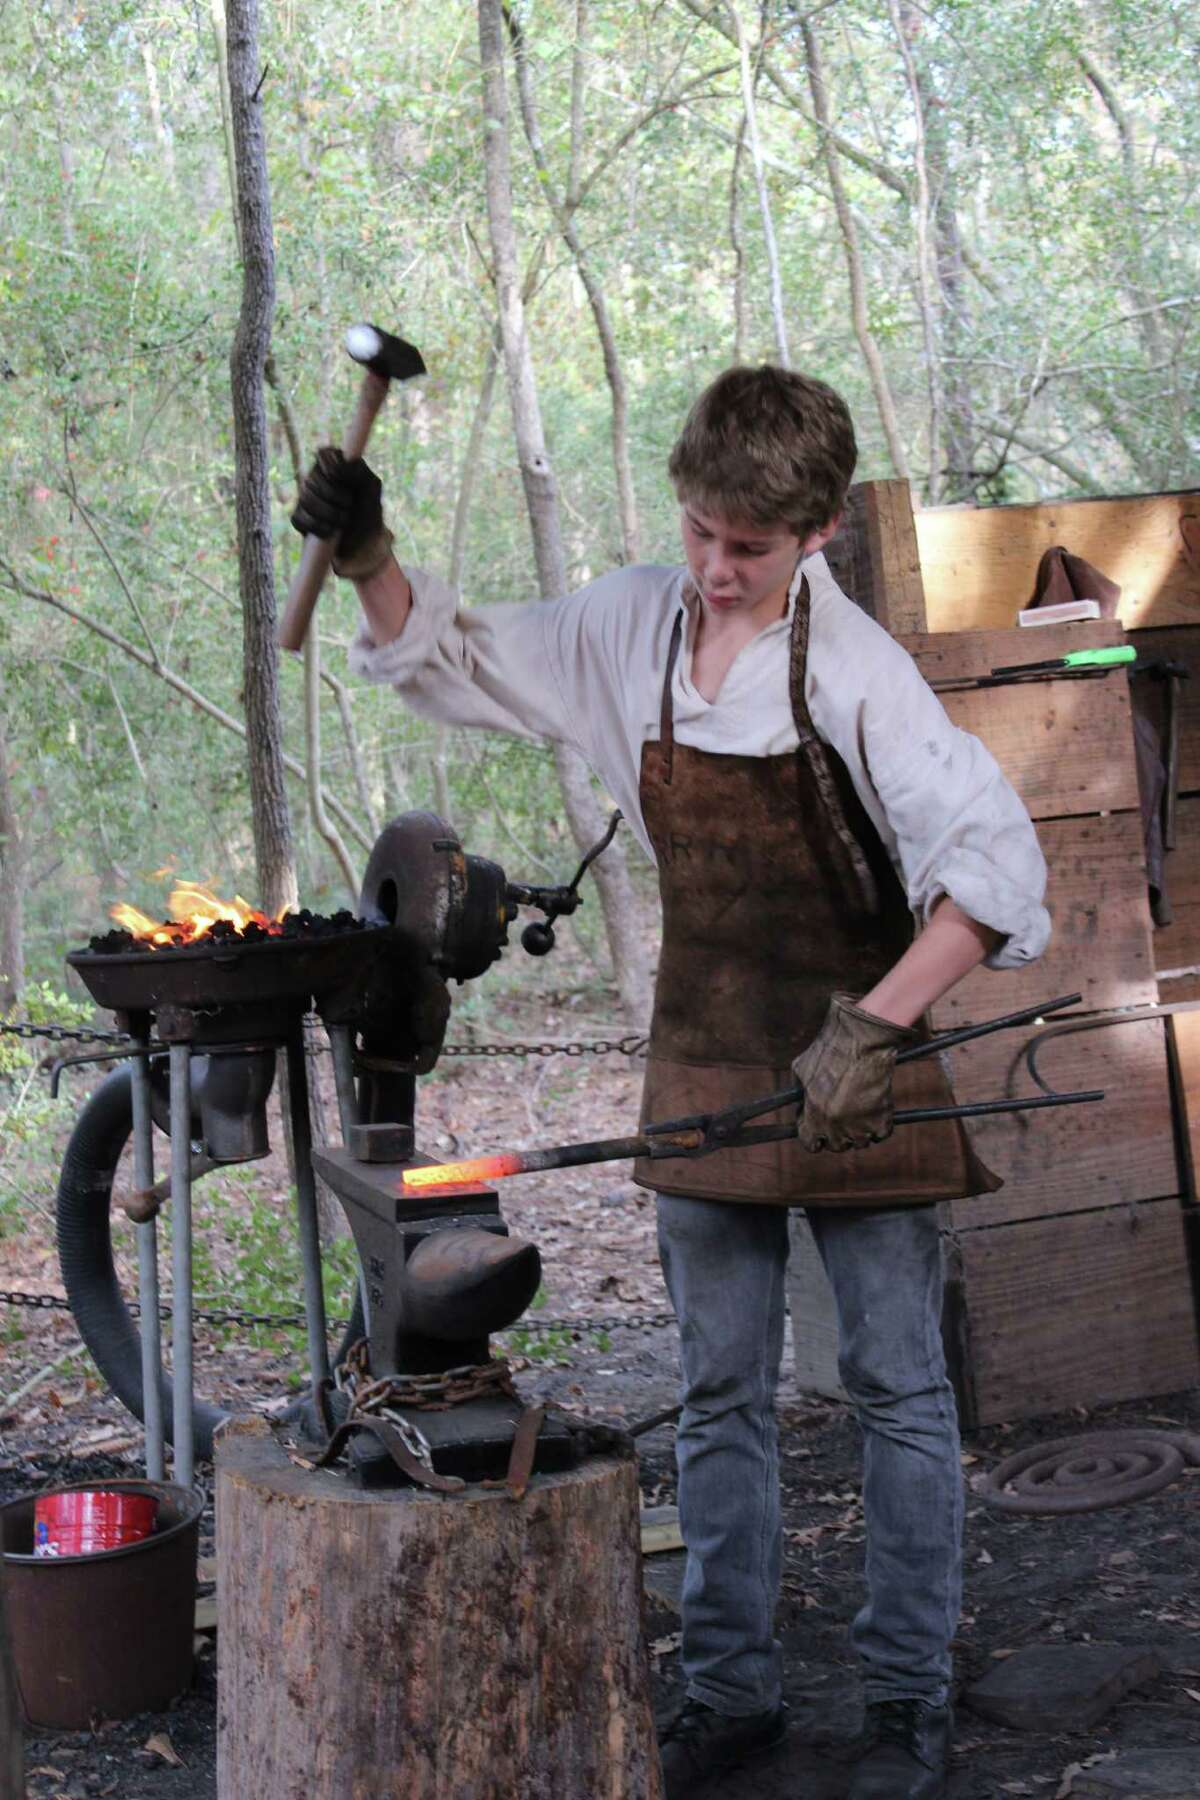 Costumed re-enactors, such as blacksmith James Yordy, will be featured at Pioneer Day.